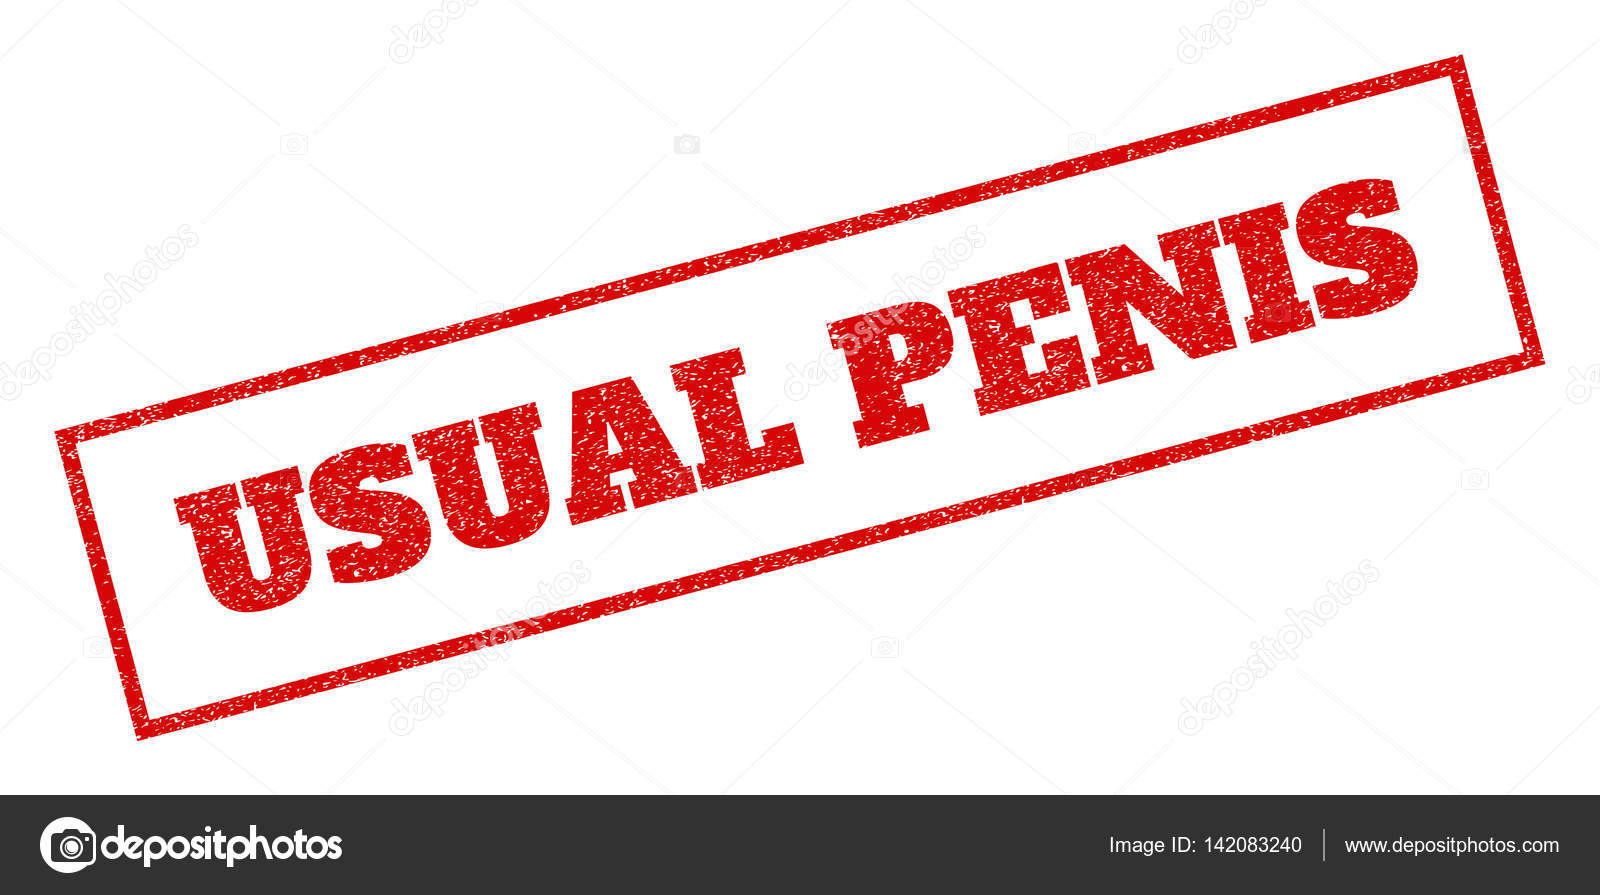 usual penis